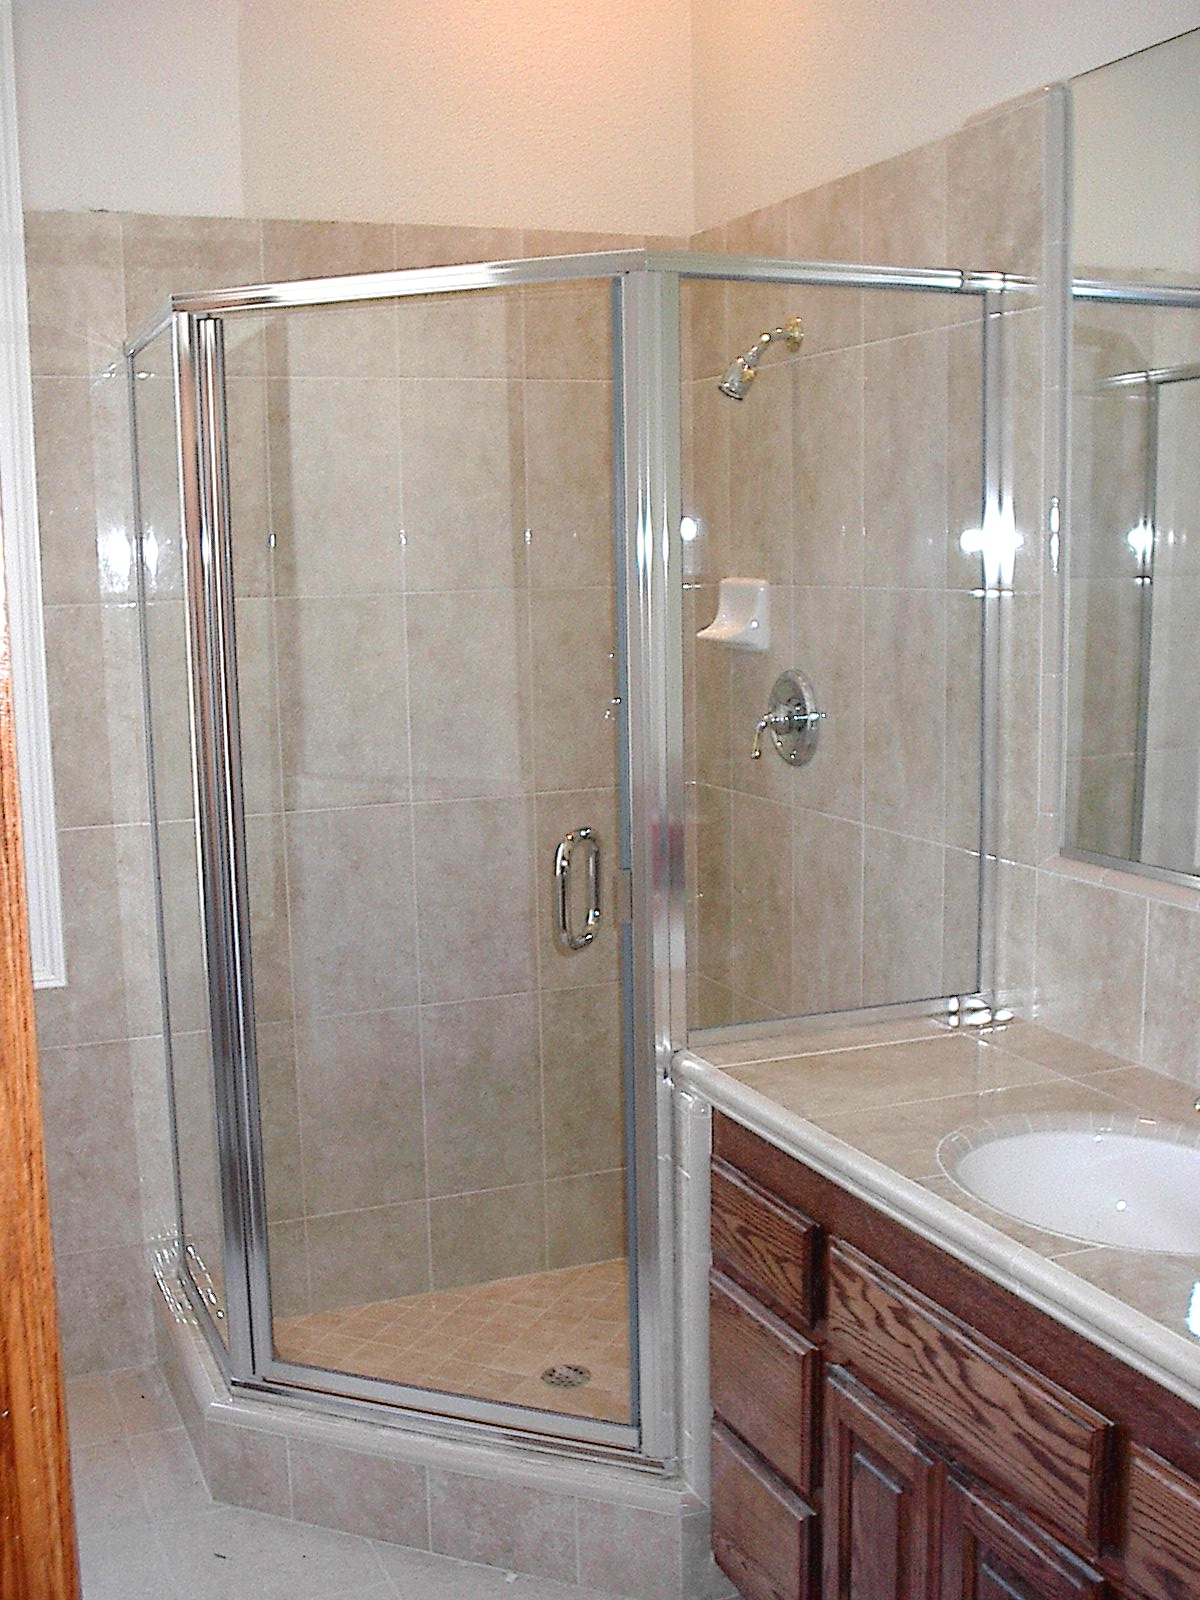 hexagonal framed shower enclosure with swinging door